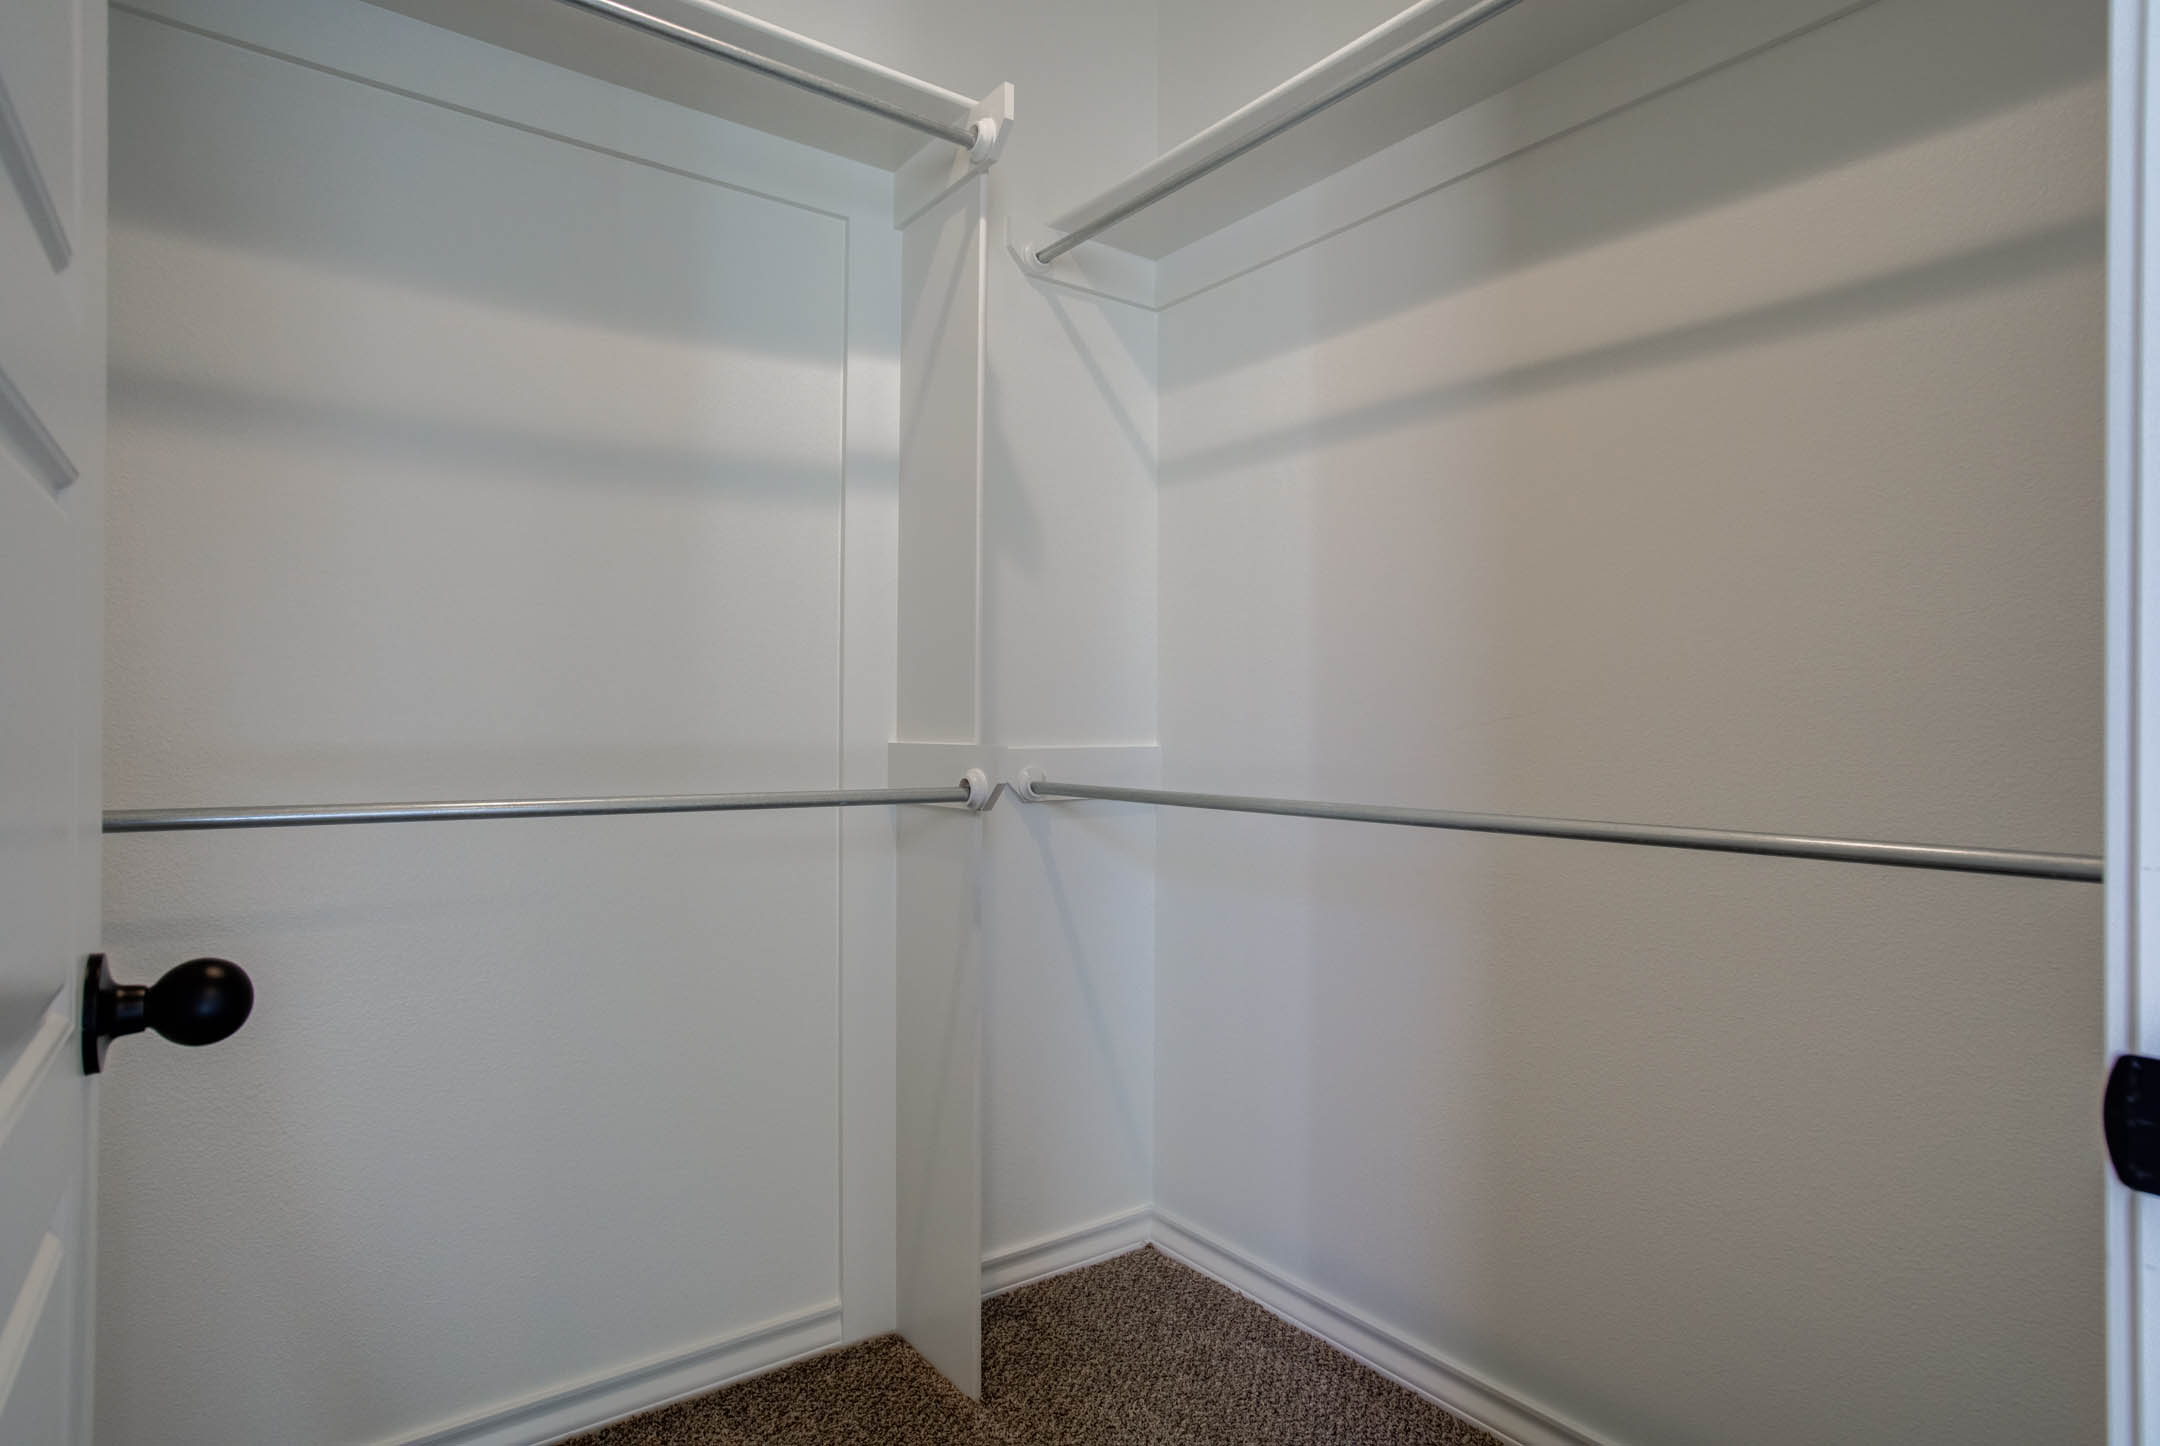 Spacious closet in new home for sale in Lubbock, Texas.